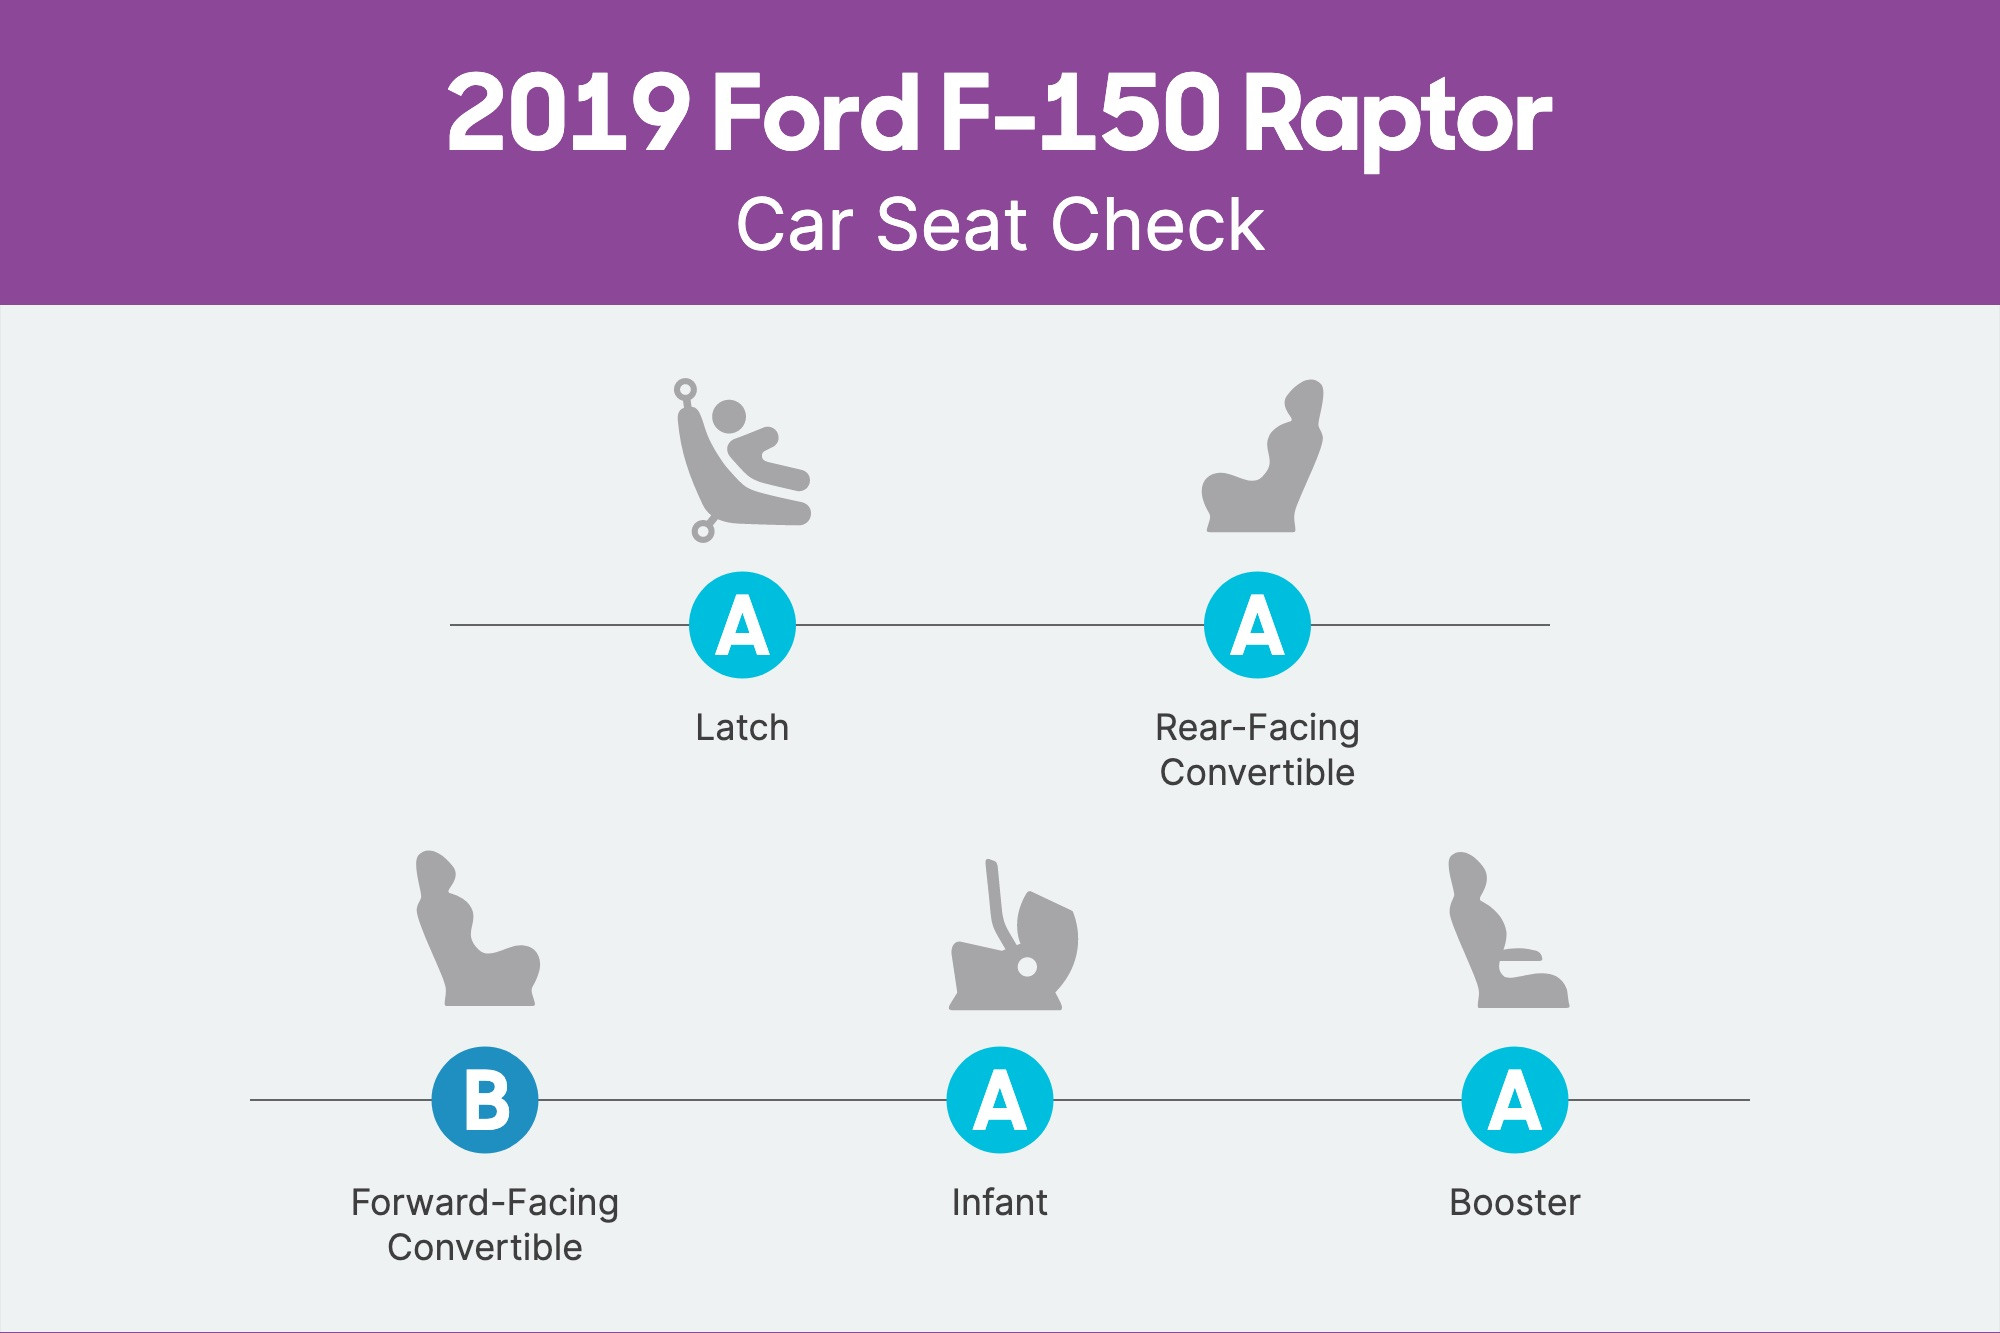 How Do Car Seats Fit in a 2019 Ford F-150 Raptor?